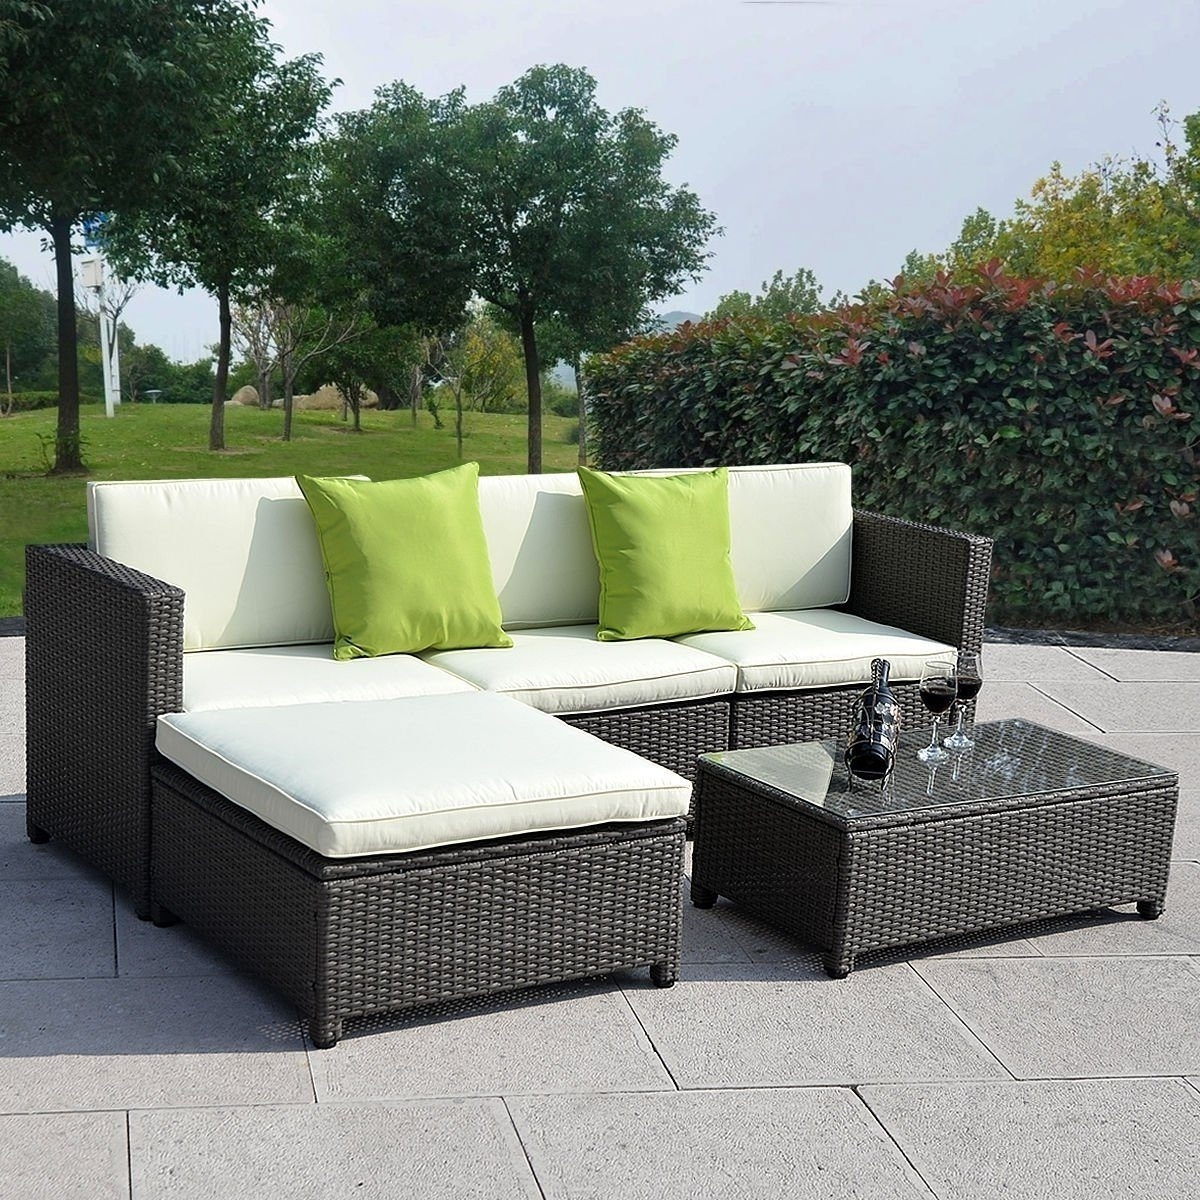 2019 Outdoor Patio Sofa Furniture – Outdoor Designs With Regard To Outdoor Sofa Chairs (View 4 of 20)